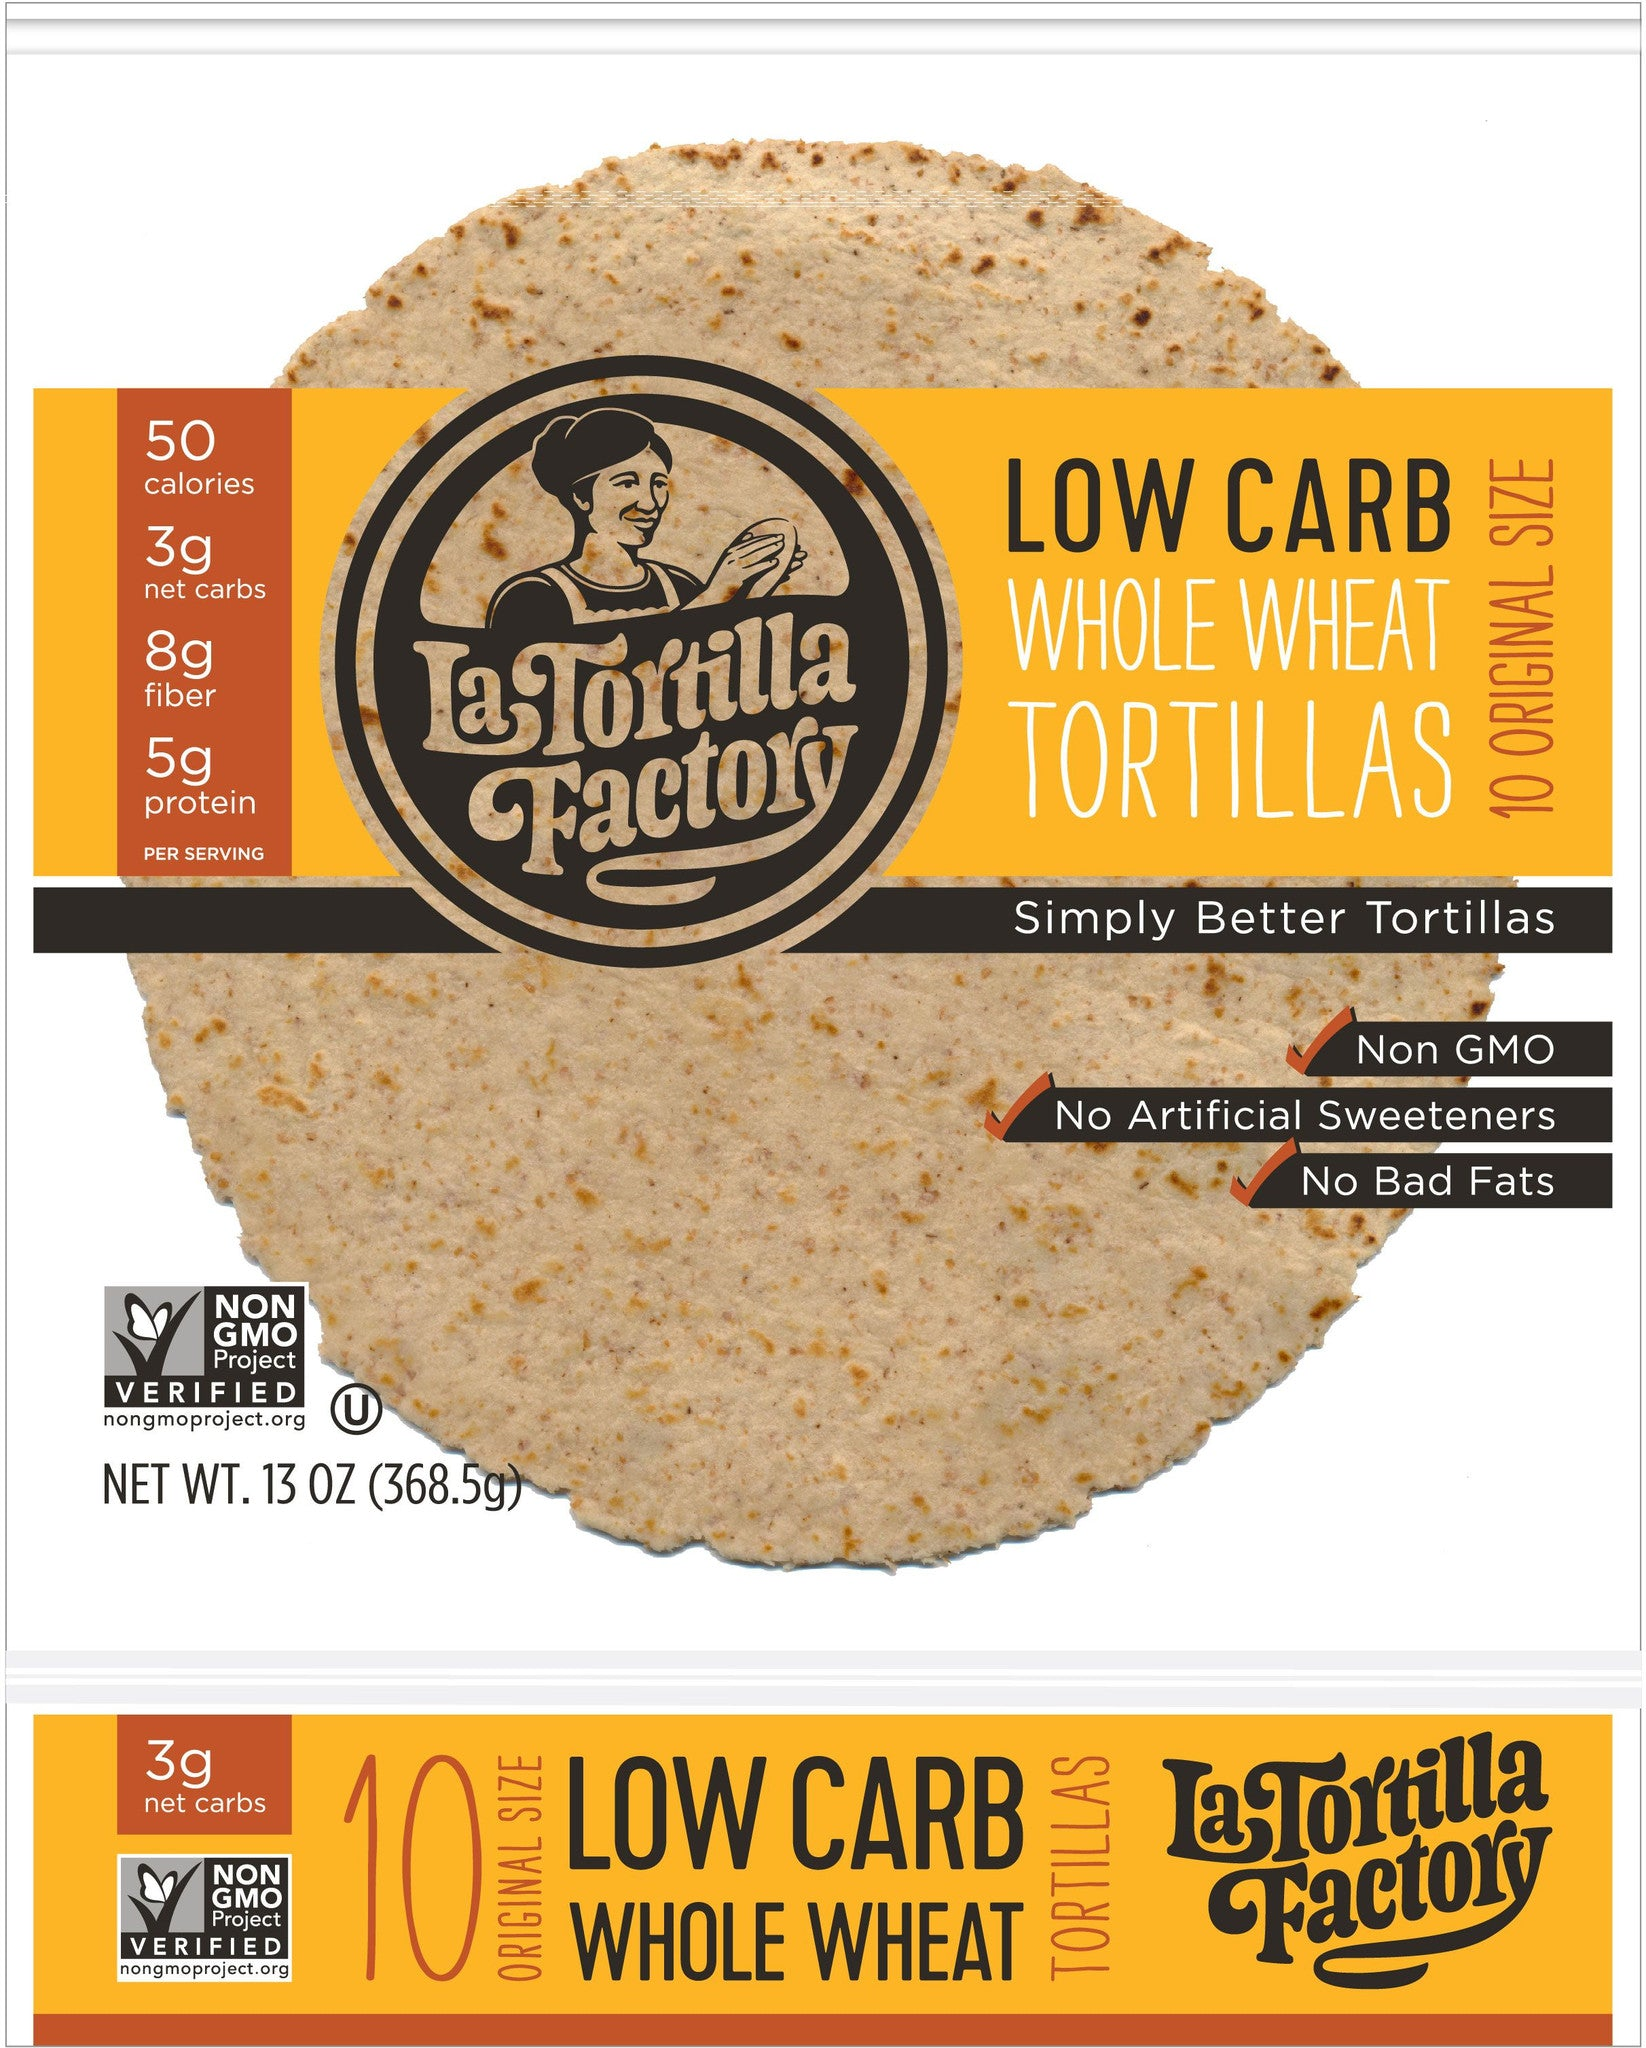 La Tortilla Factory Low Carb, High Fiber Tortillas, Made with Whole Wheat, Original Size, 10 Ea (Pack of 5)